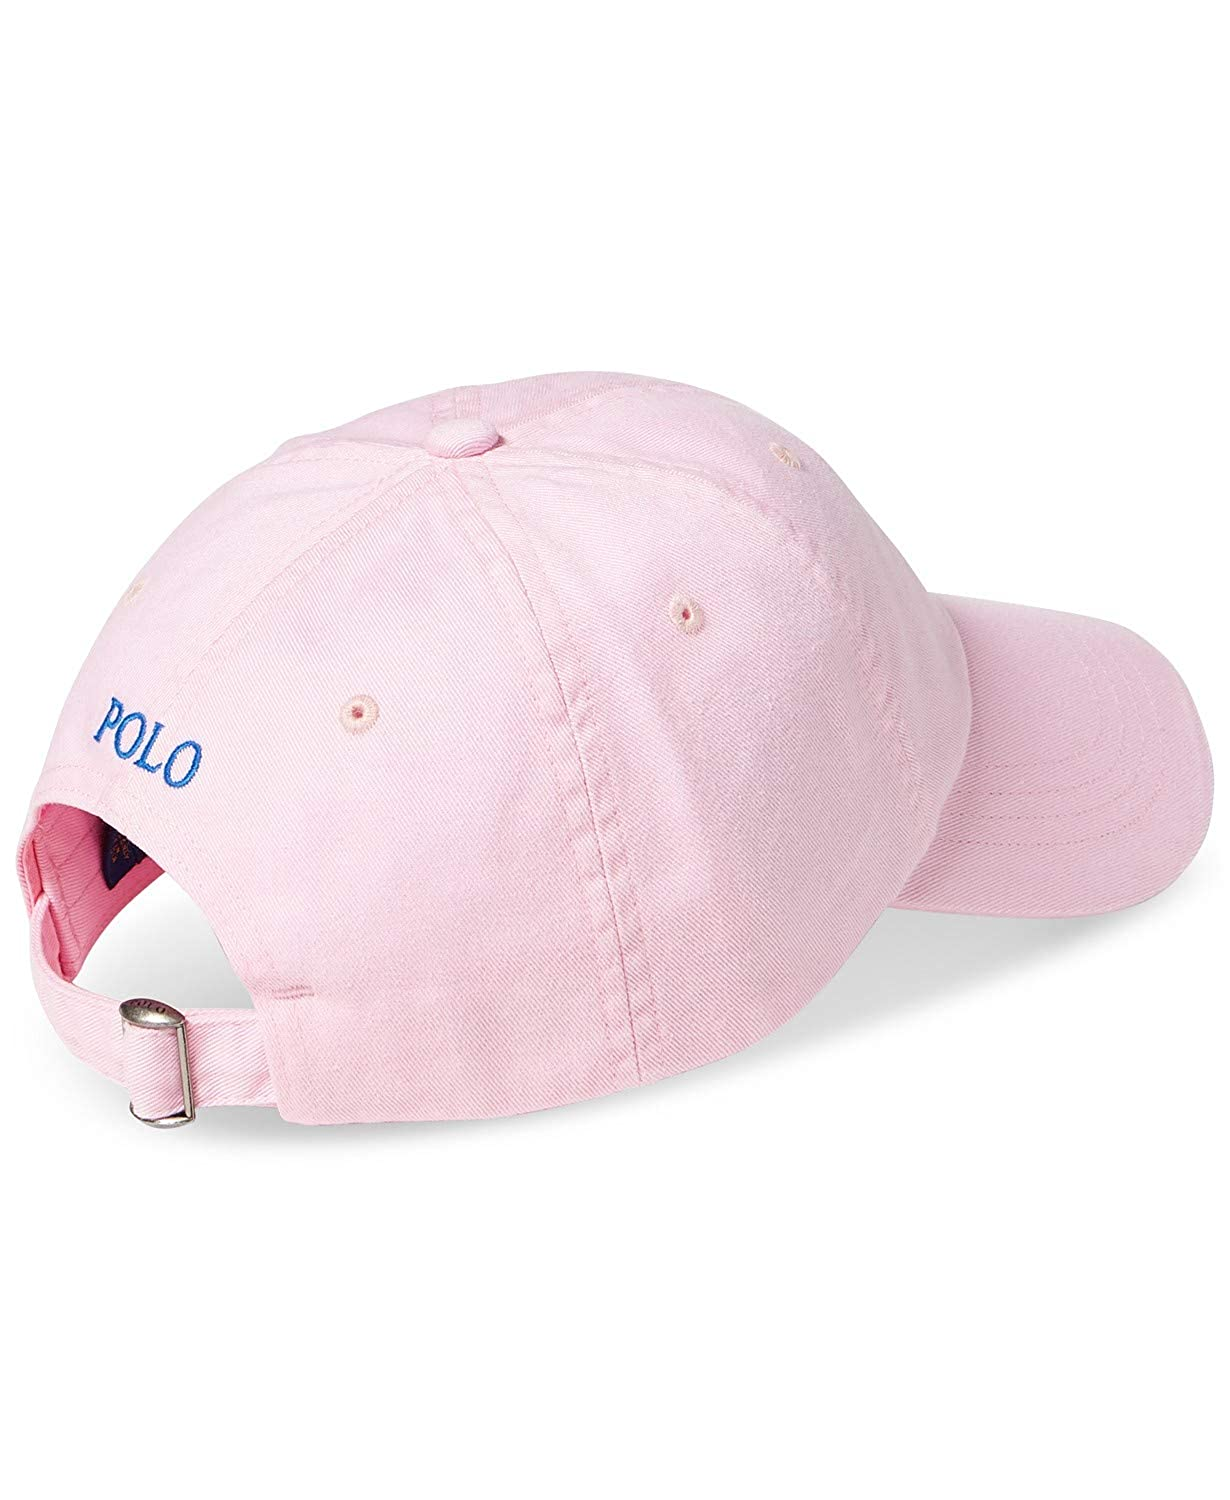 df2416aab56 Ralph Lauren Men s Baseball Cap One size - Carmel Pink  Amazon.co.uk   Clothing